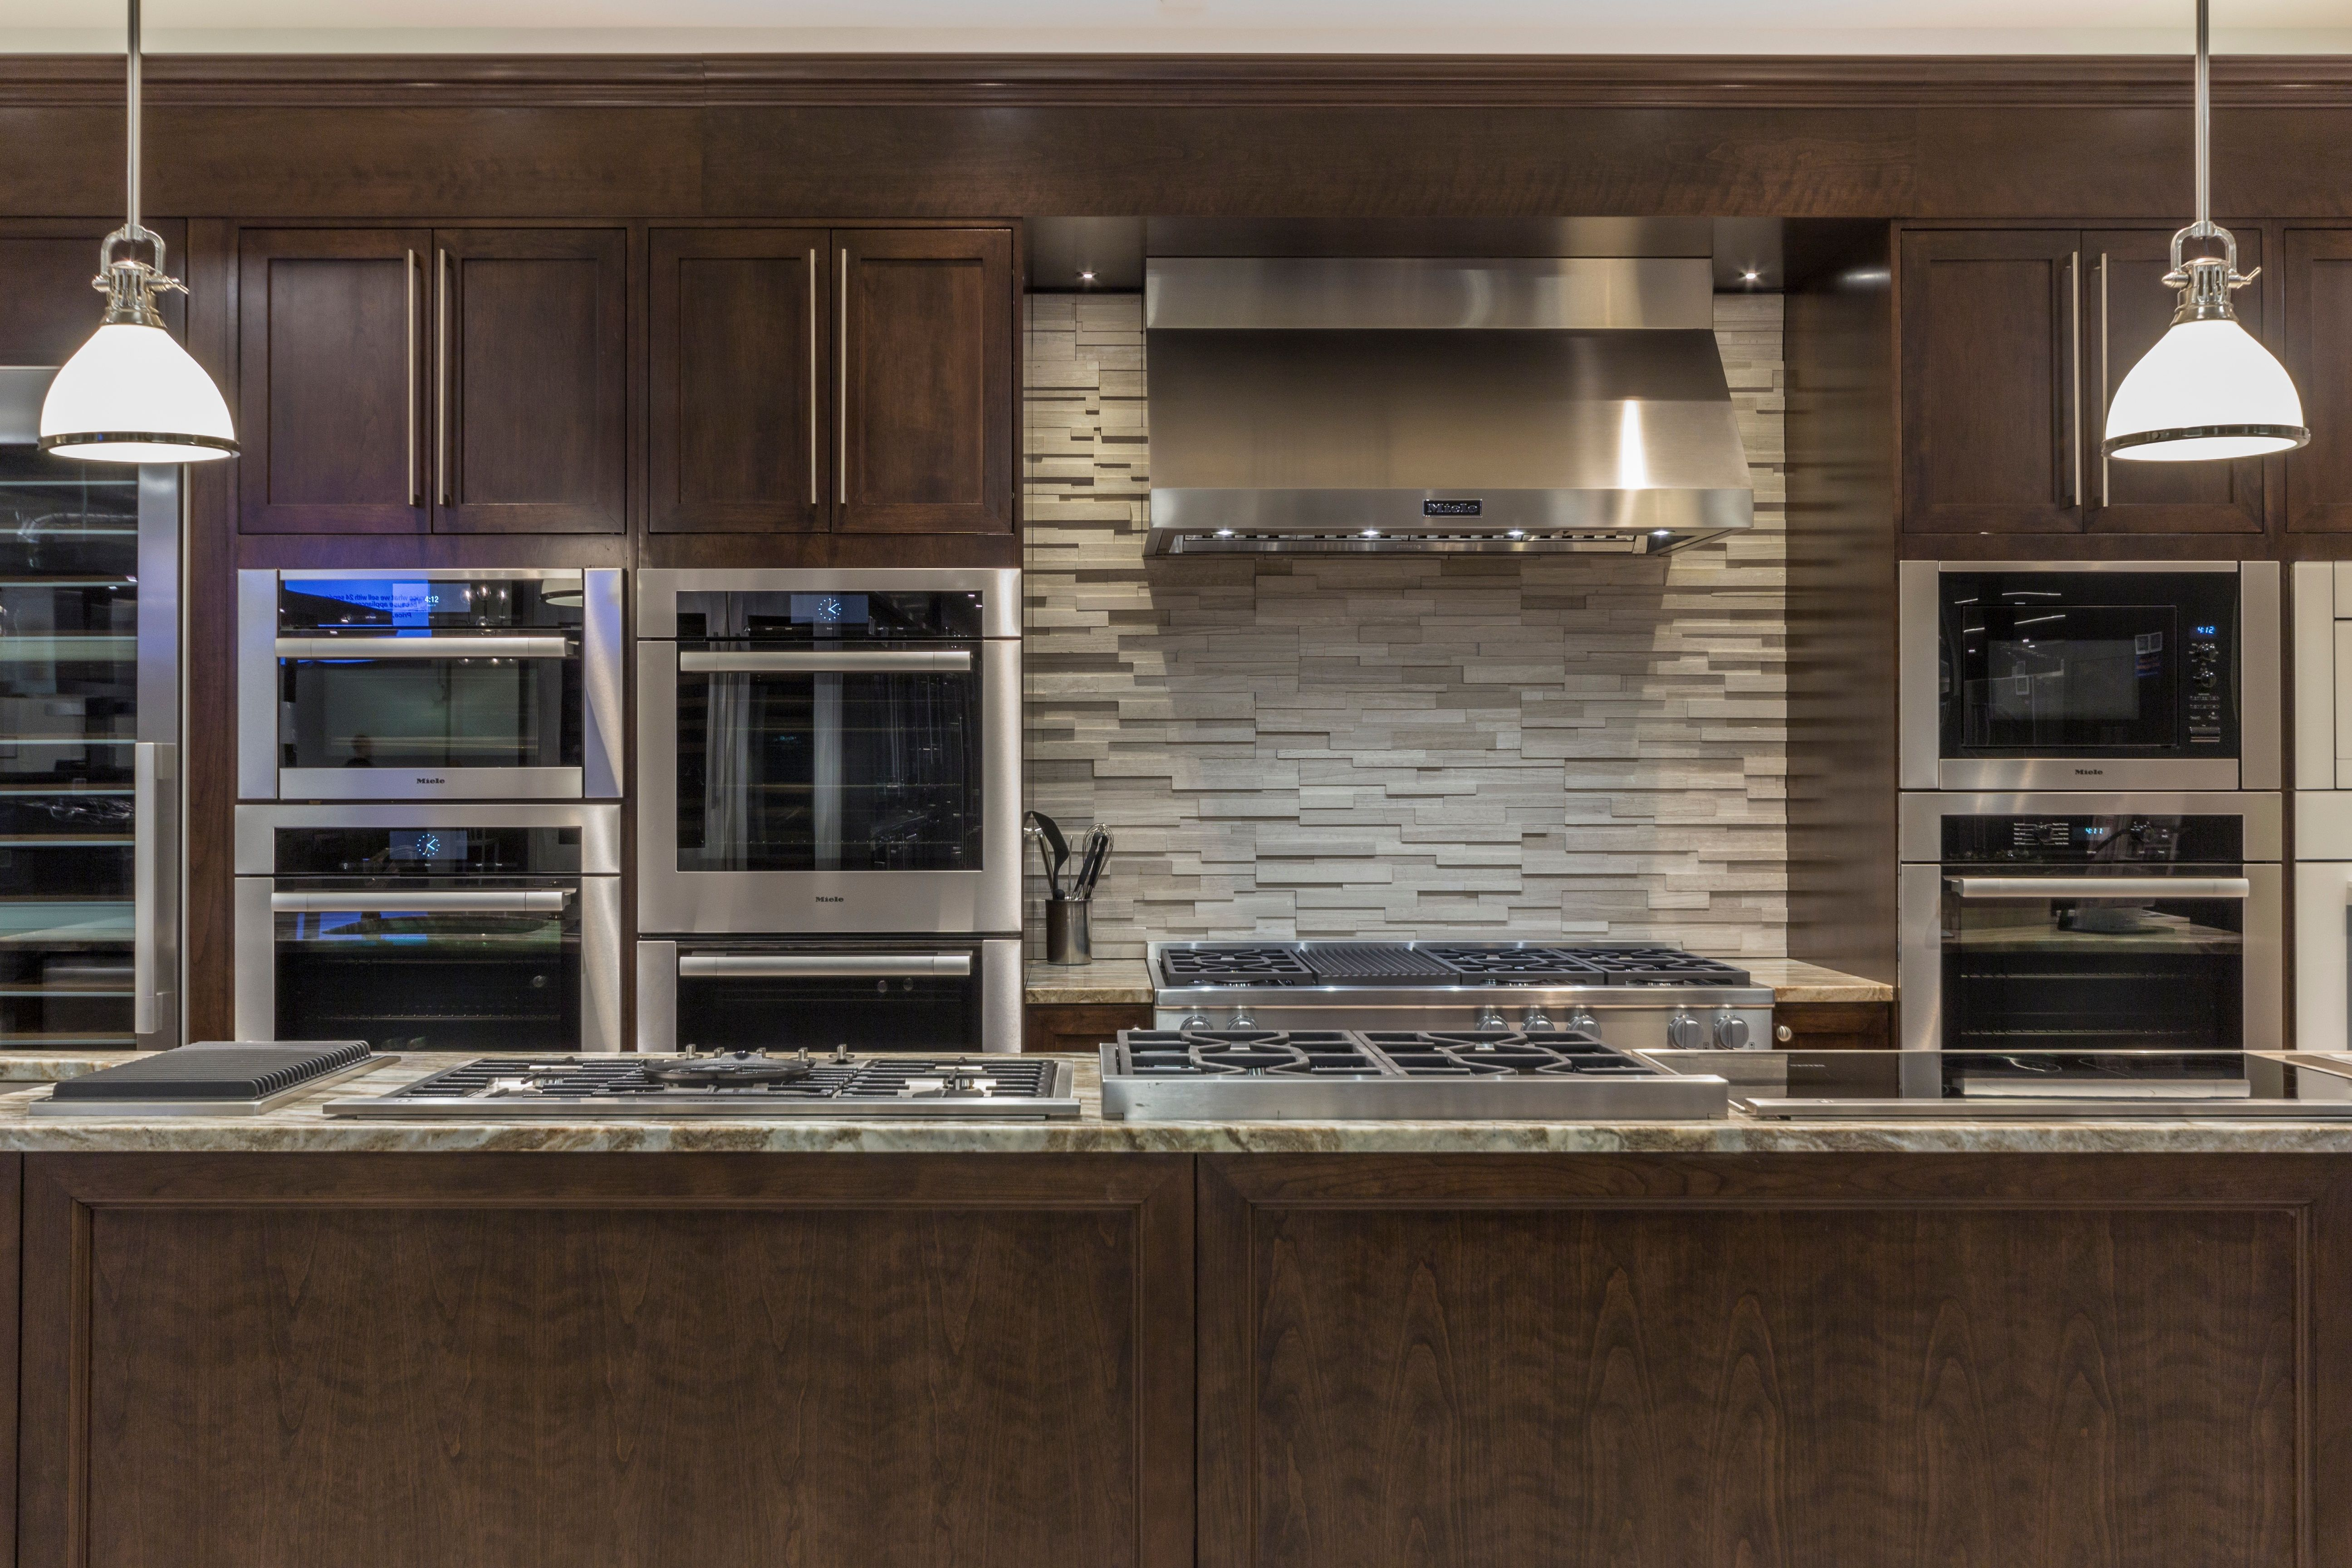 10 Best Luxury Appliance Brands For 2020 Reviews Ratings